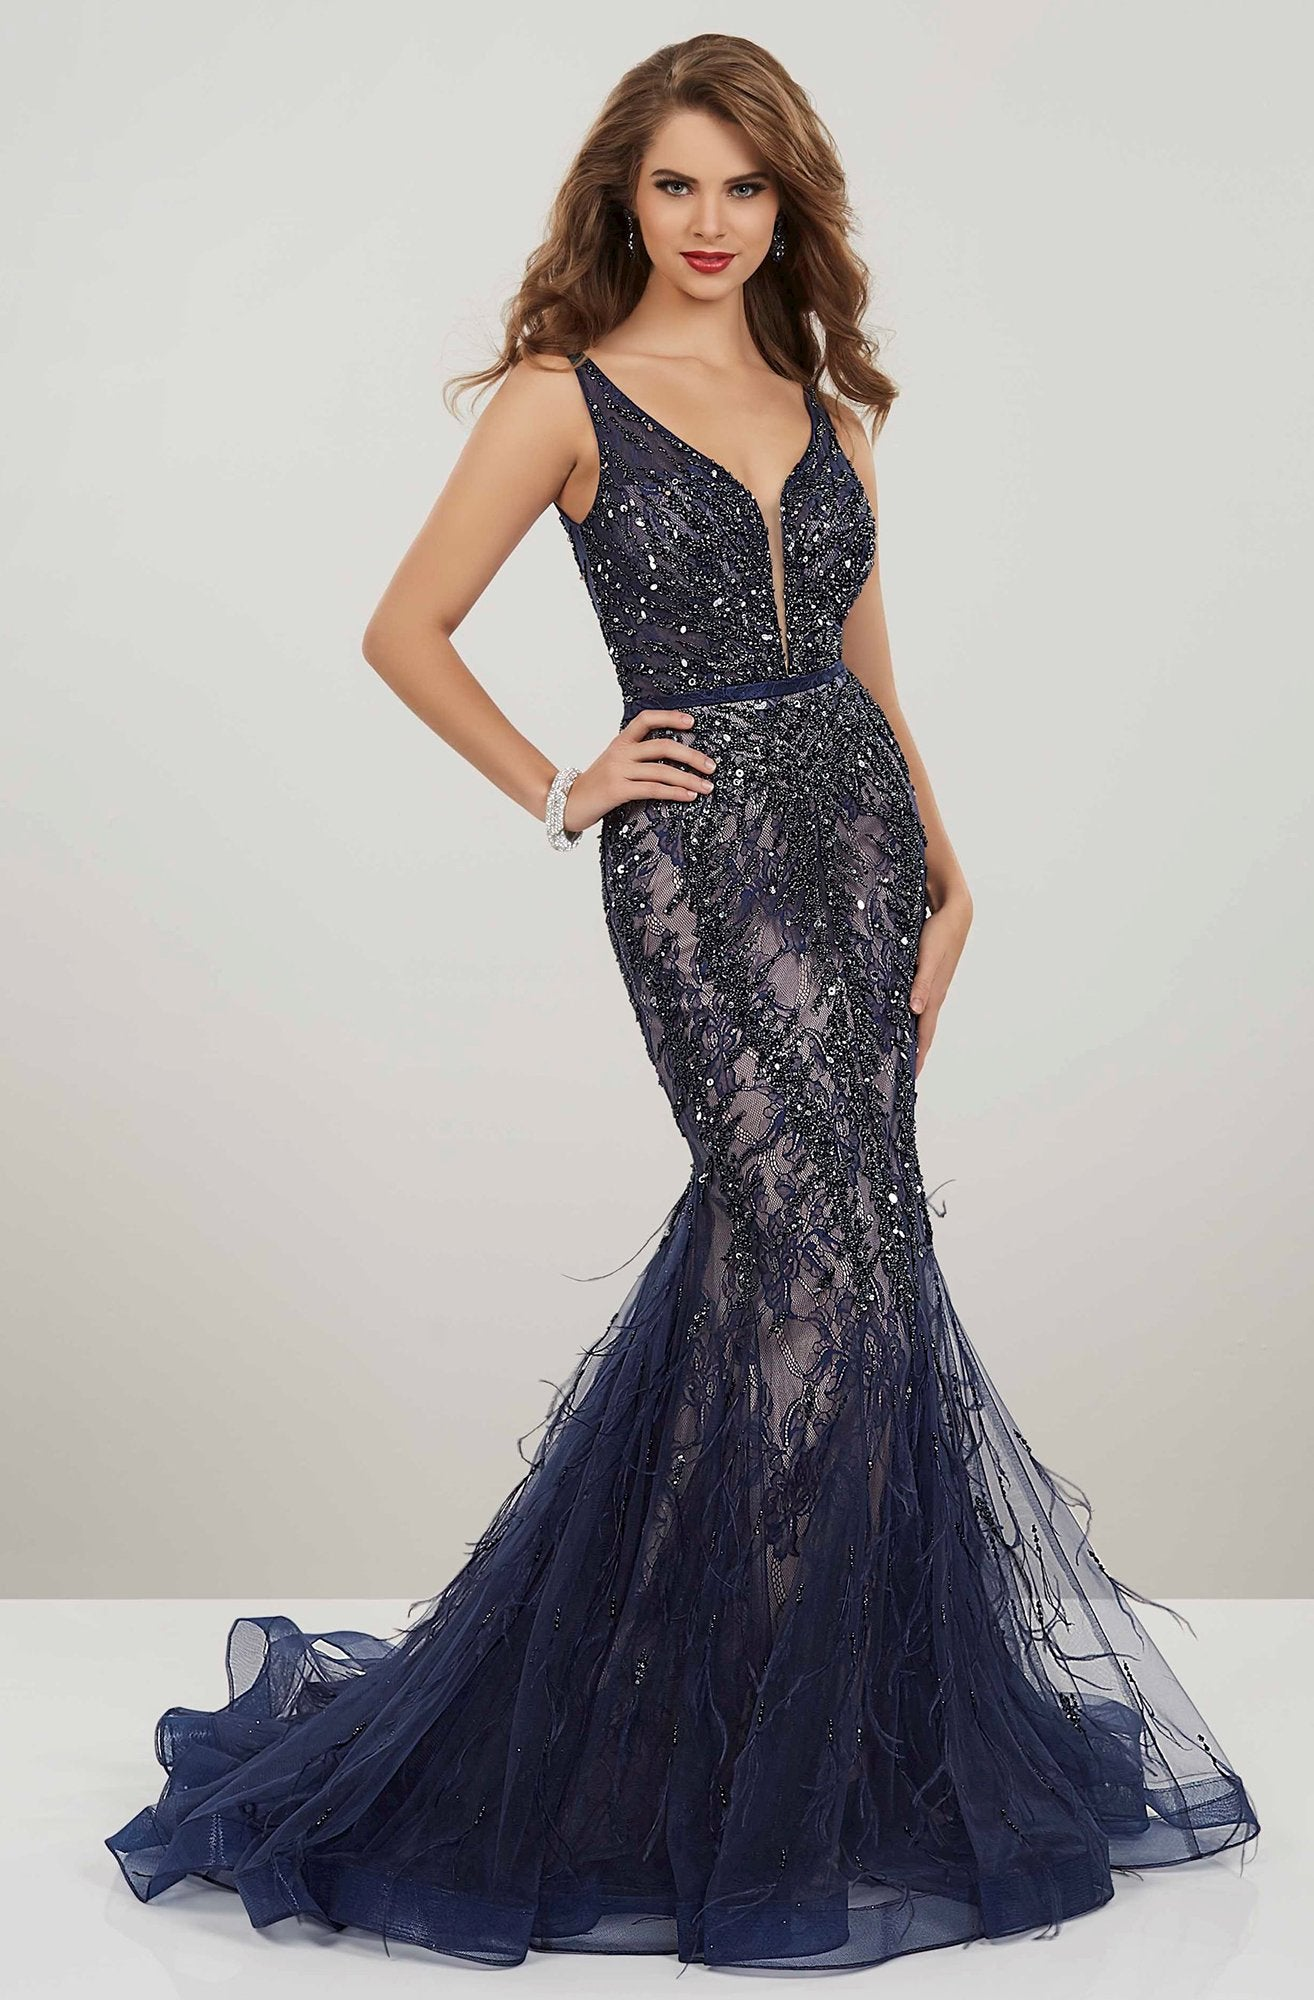 Panoply - 14957 Beaded Lace V-neck Tulle Mermaid Dress In Blue